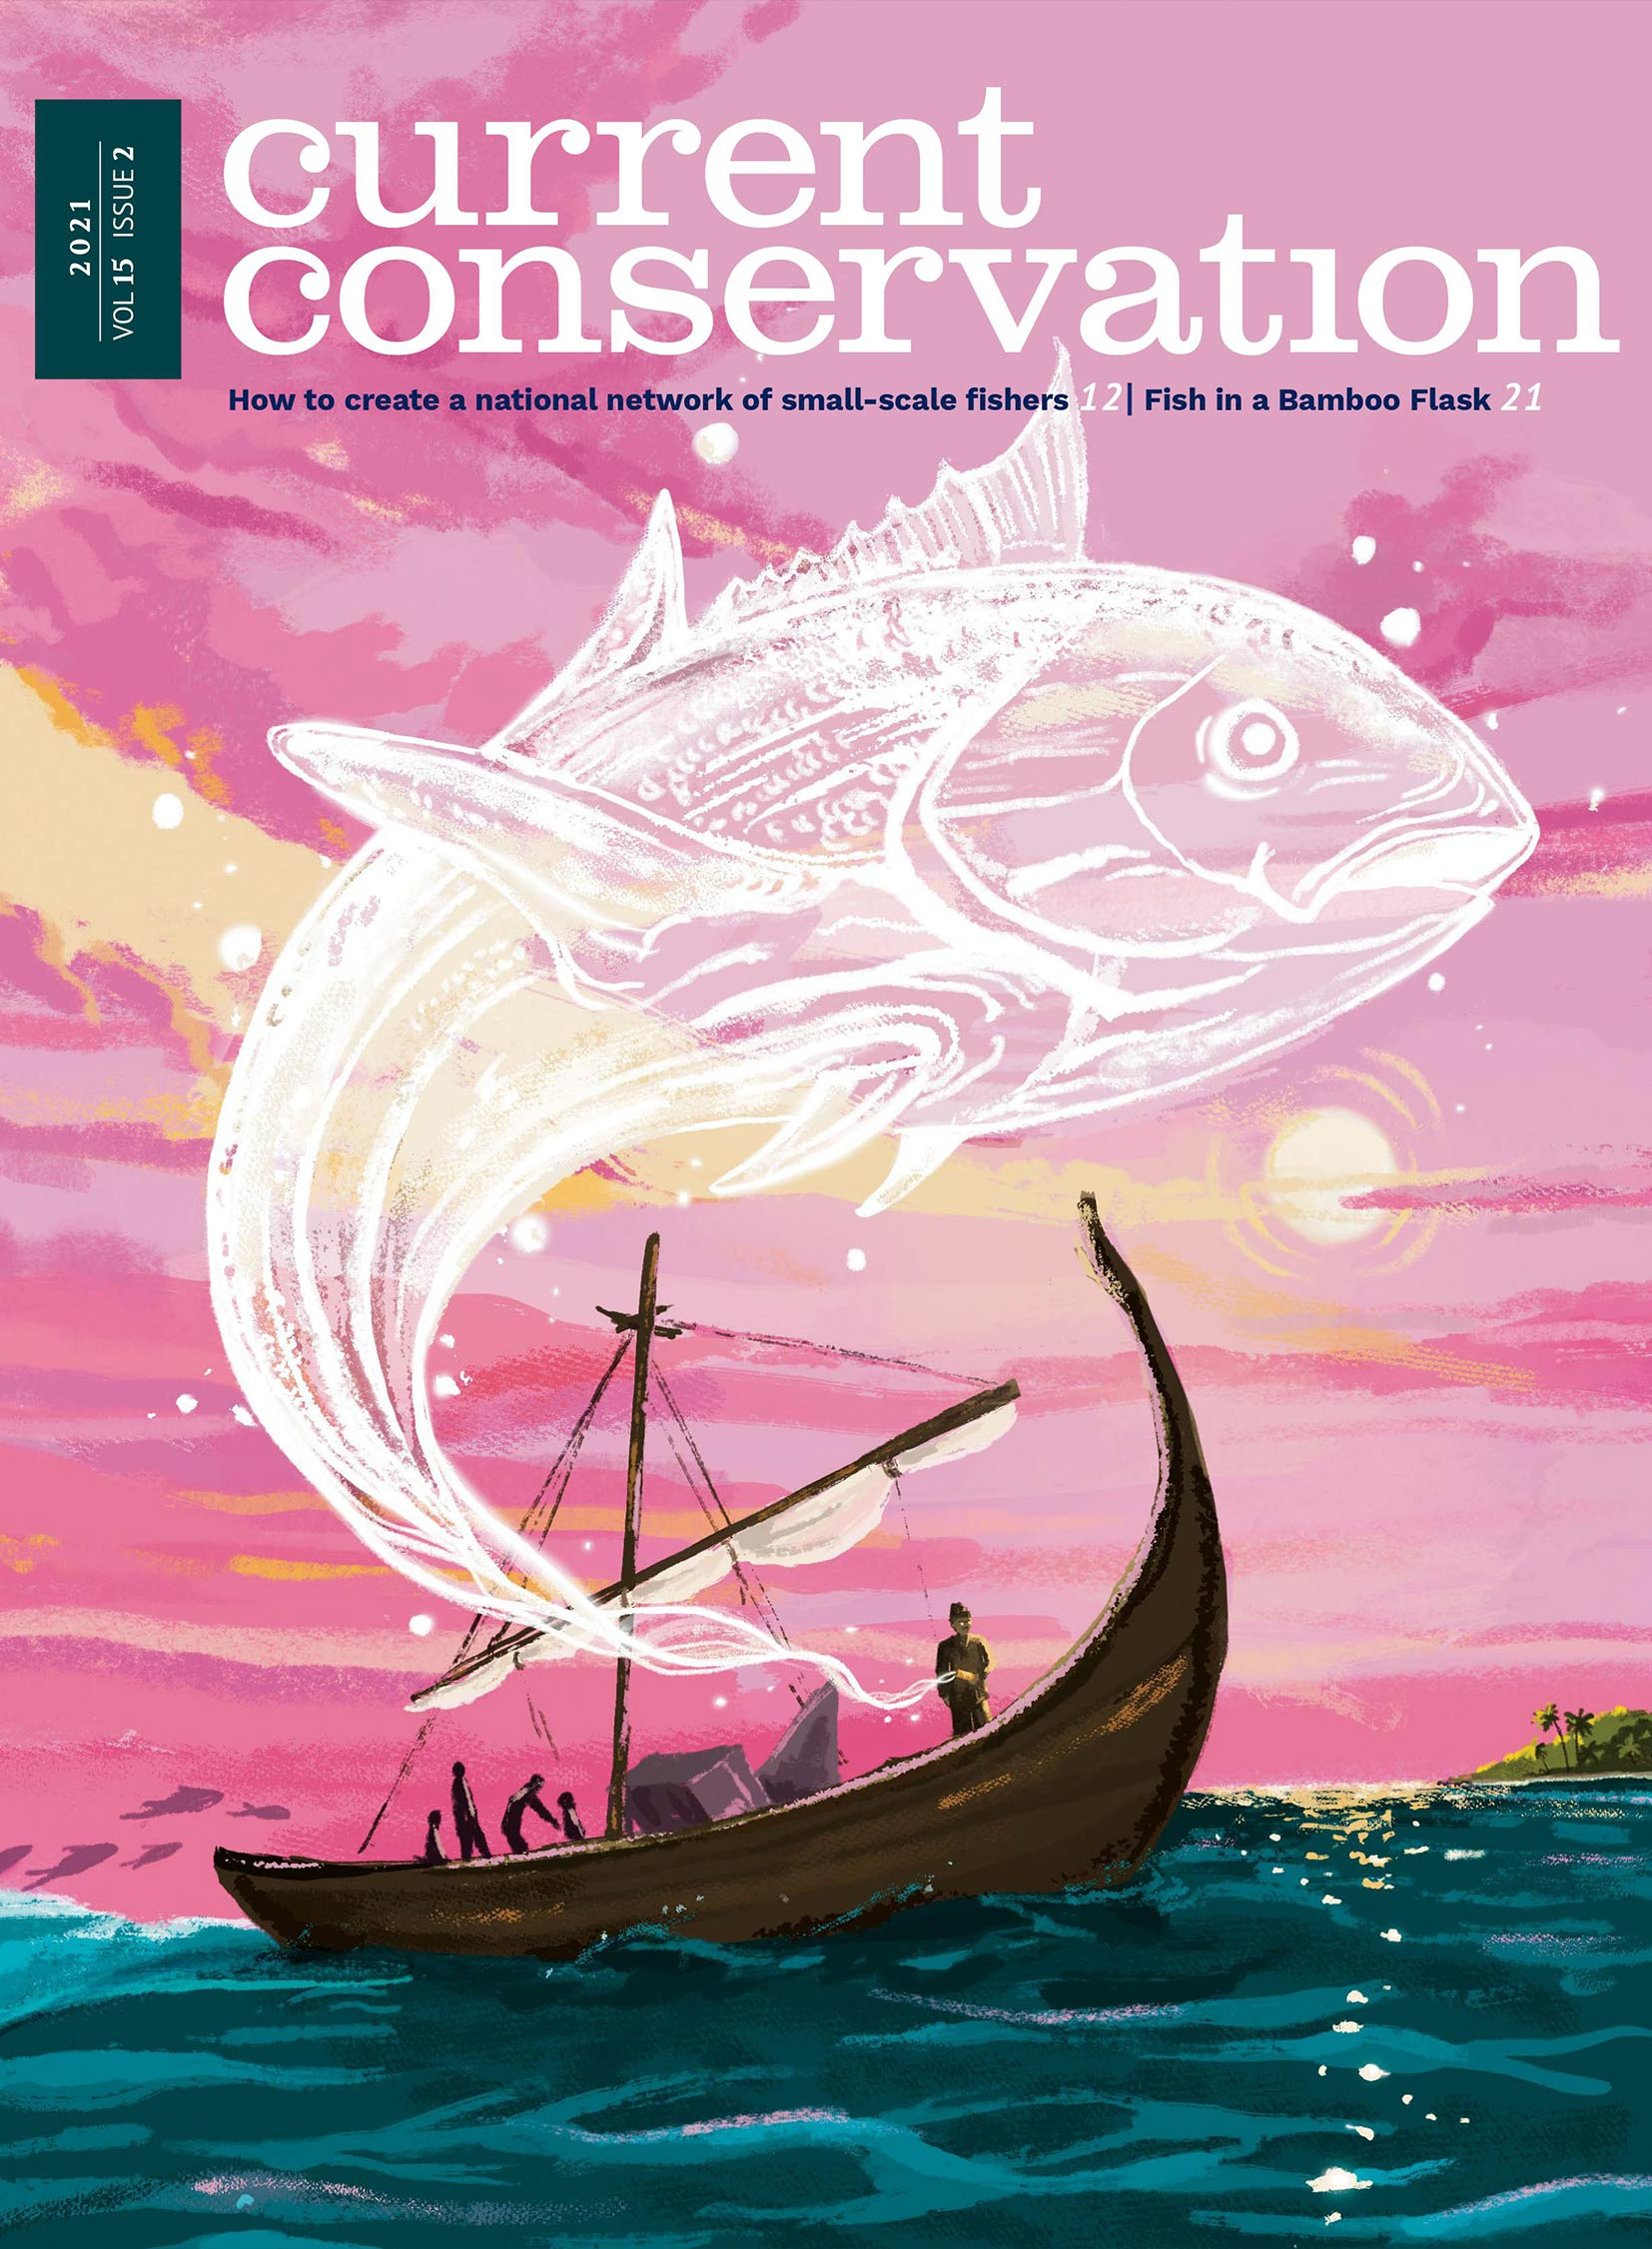 Current Conservation issue 15.2